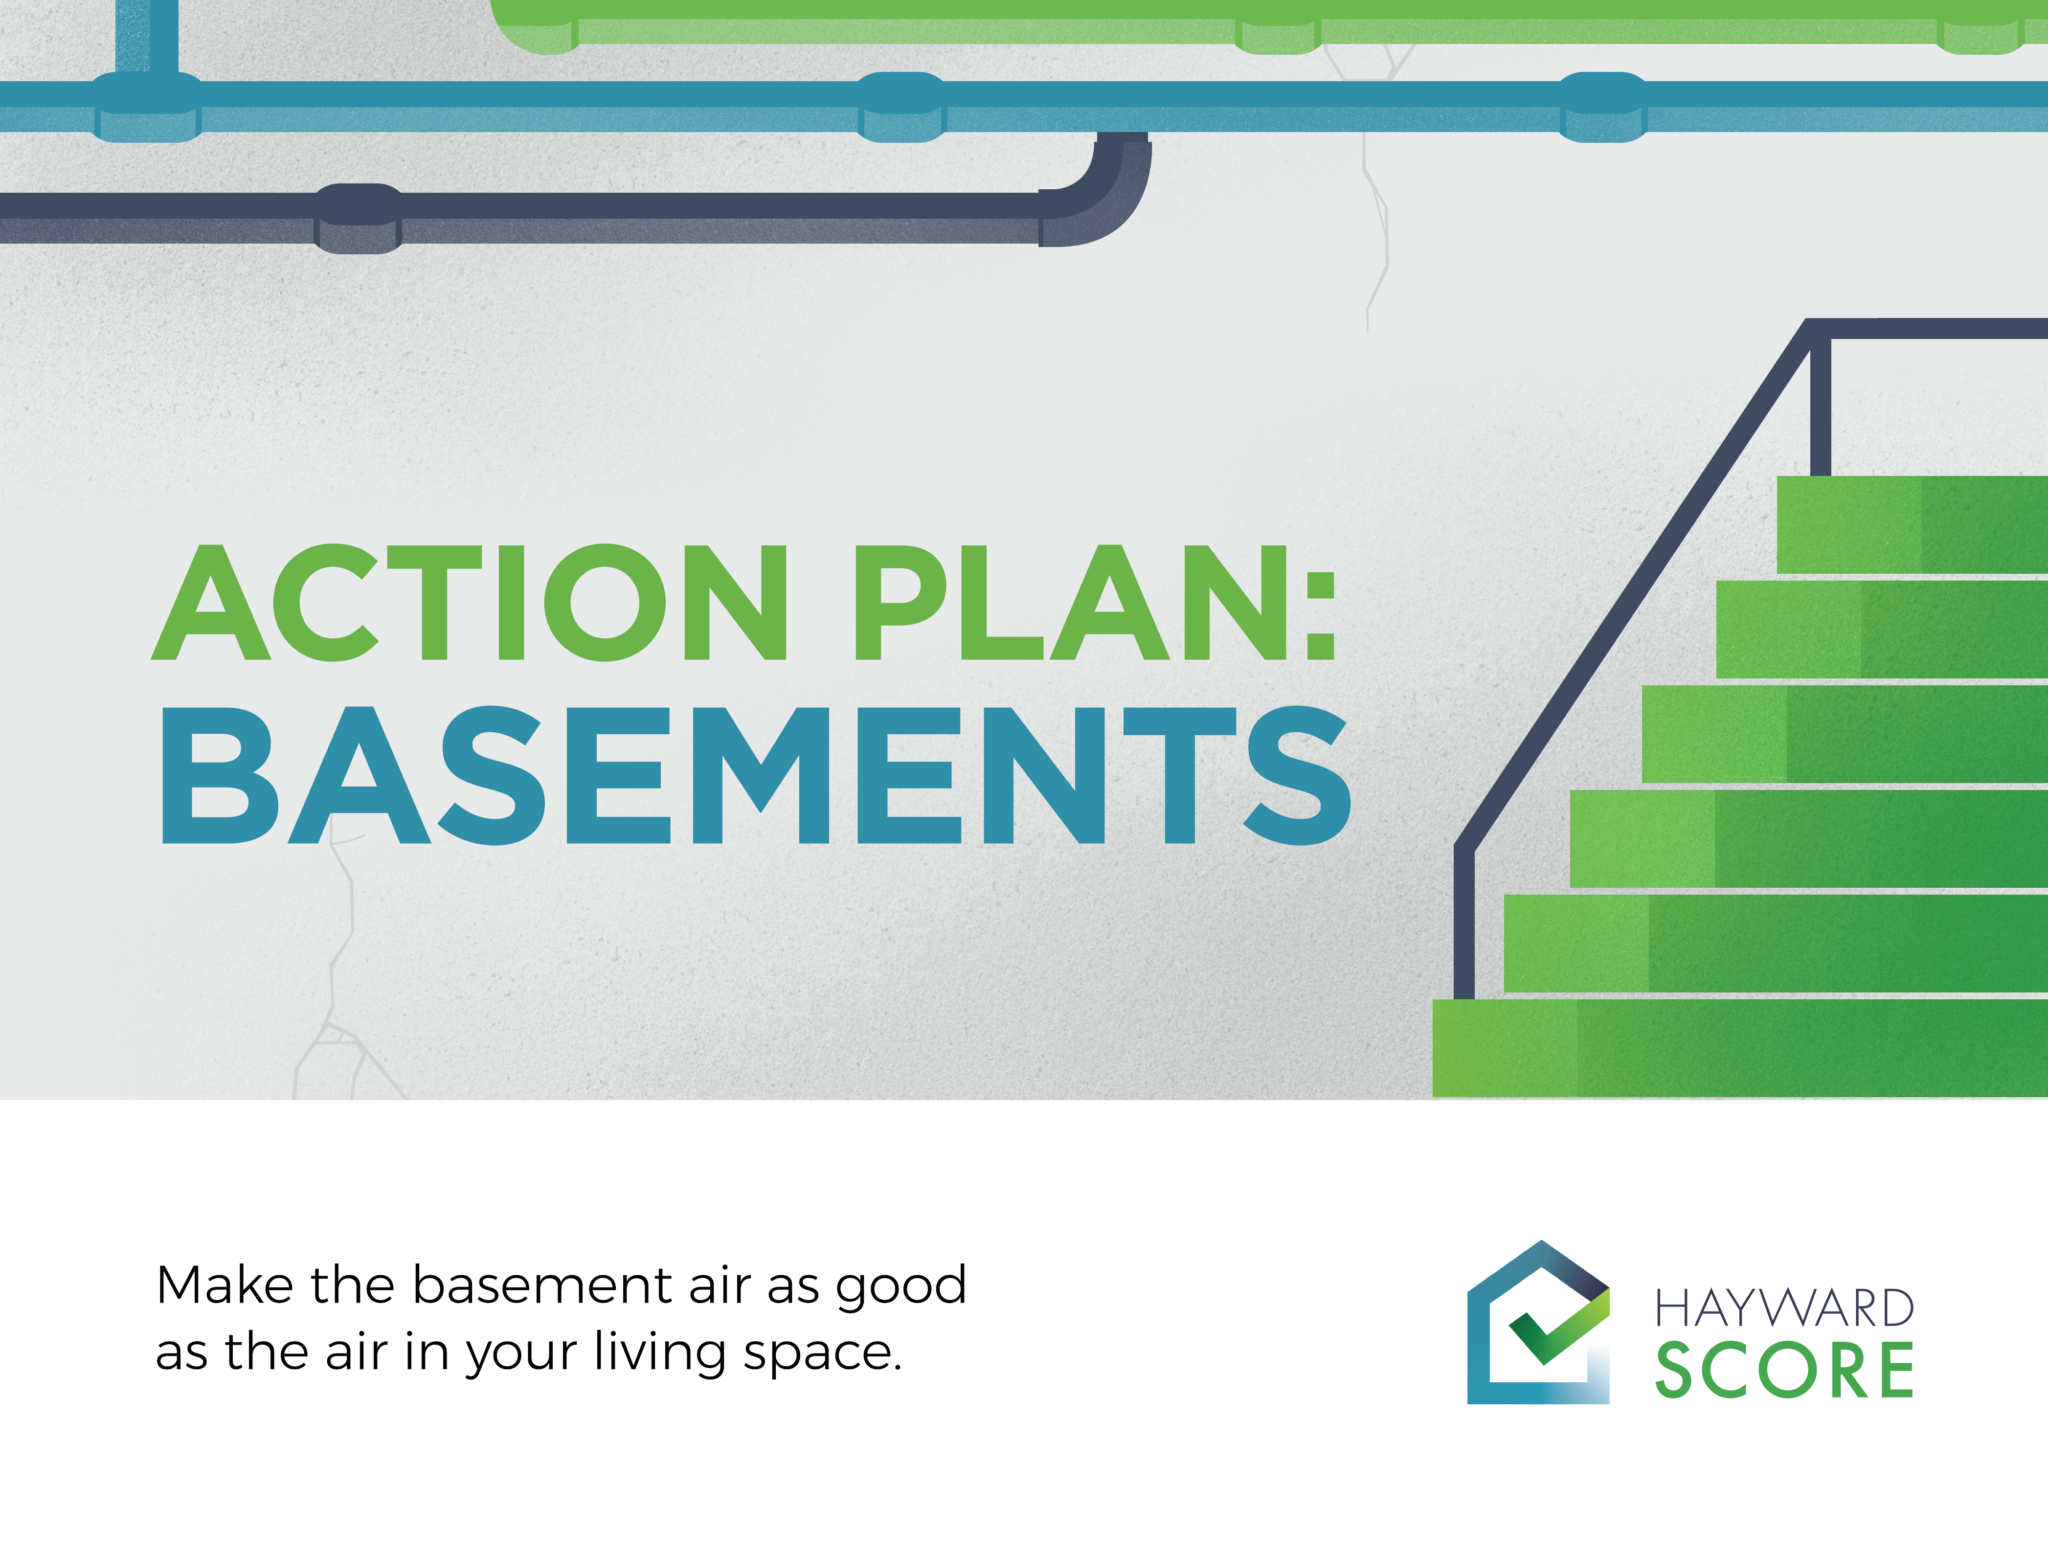 Make the basement air as good as the air in your living space.